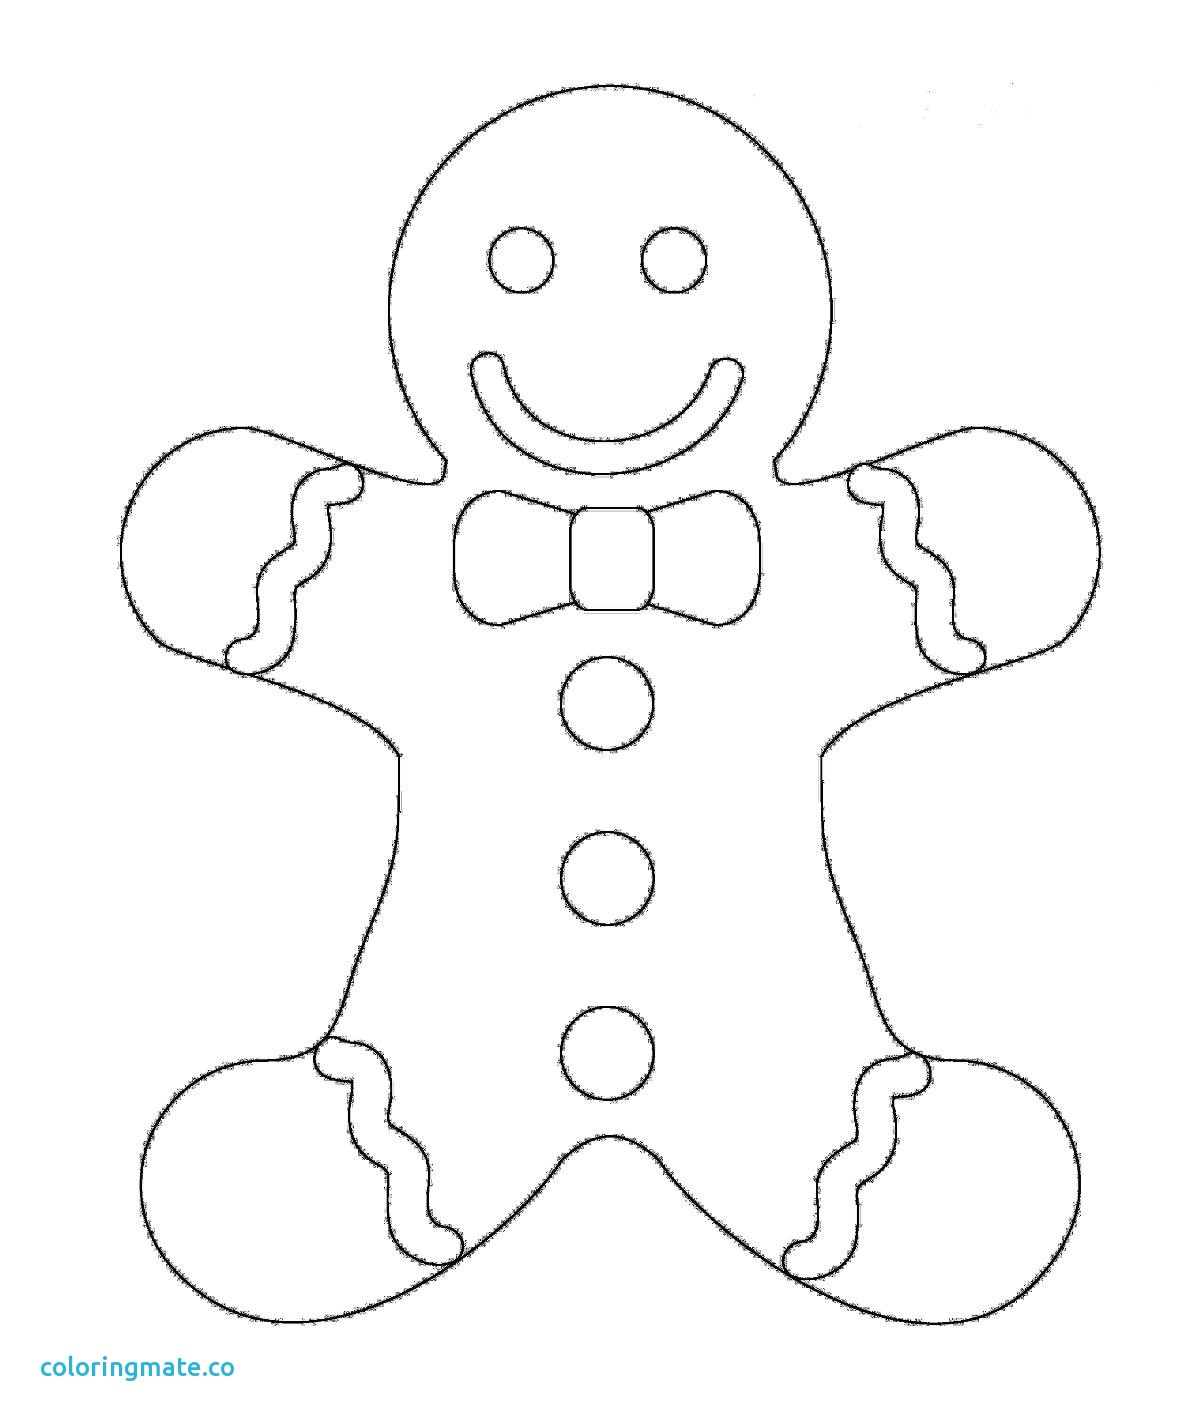 gingerbread man coloring pages printable gingerbread family coloring pages at getcoloringscom printable man gingerbread pages coloring